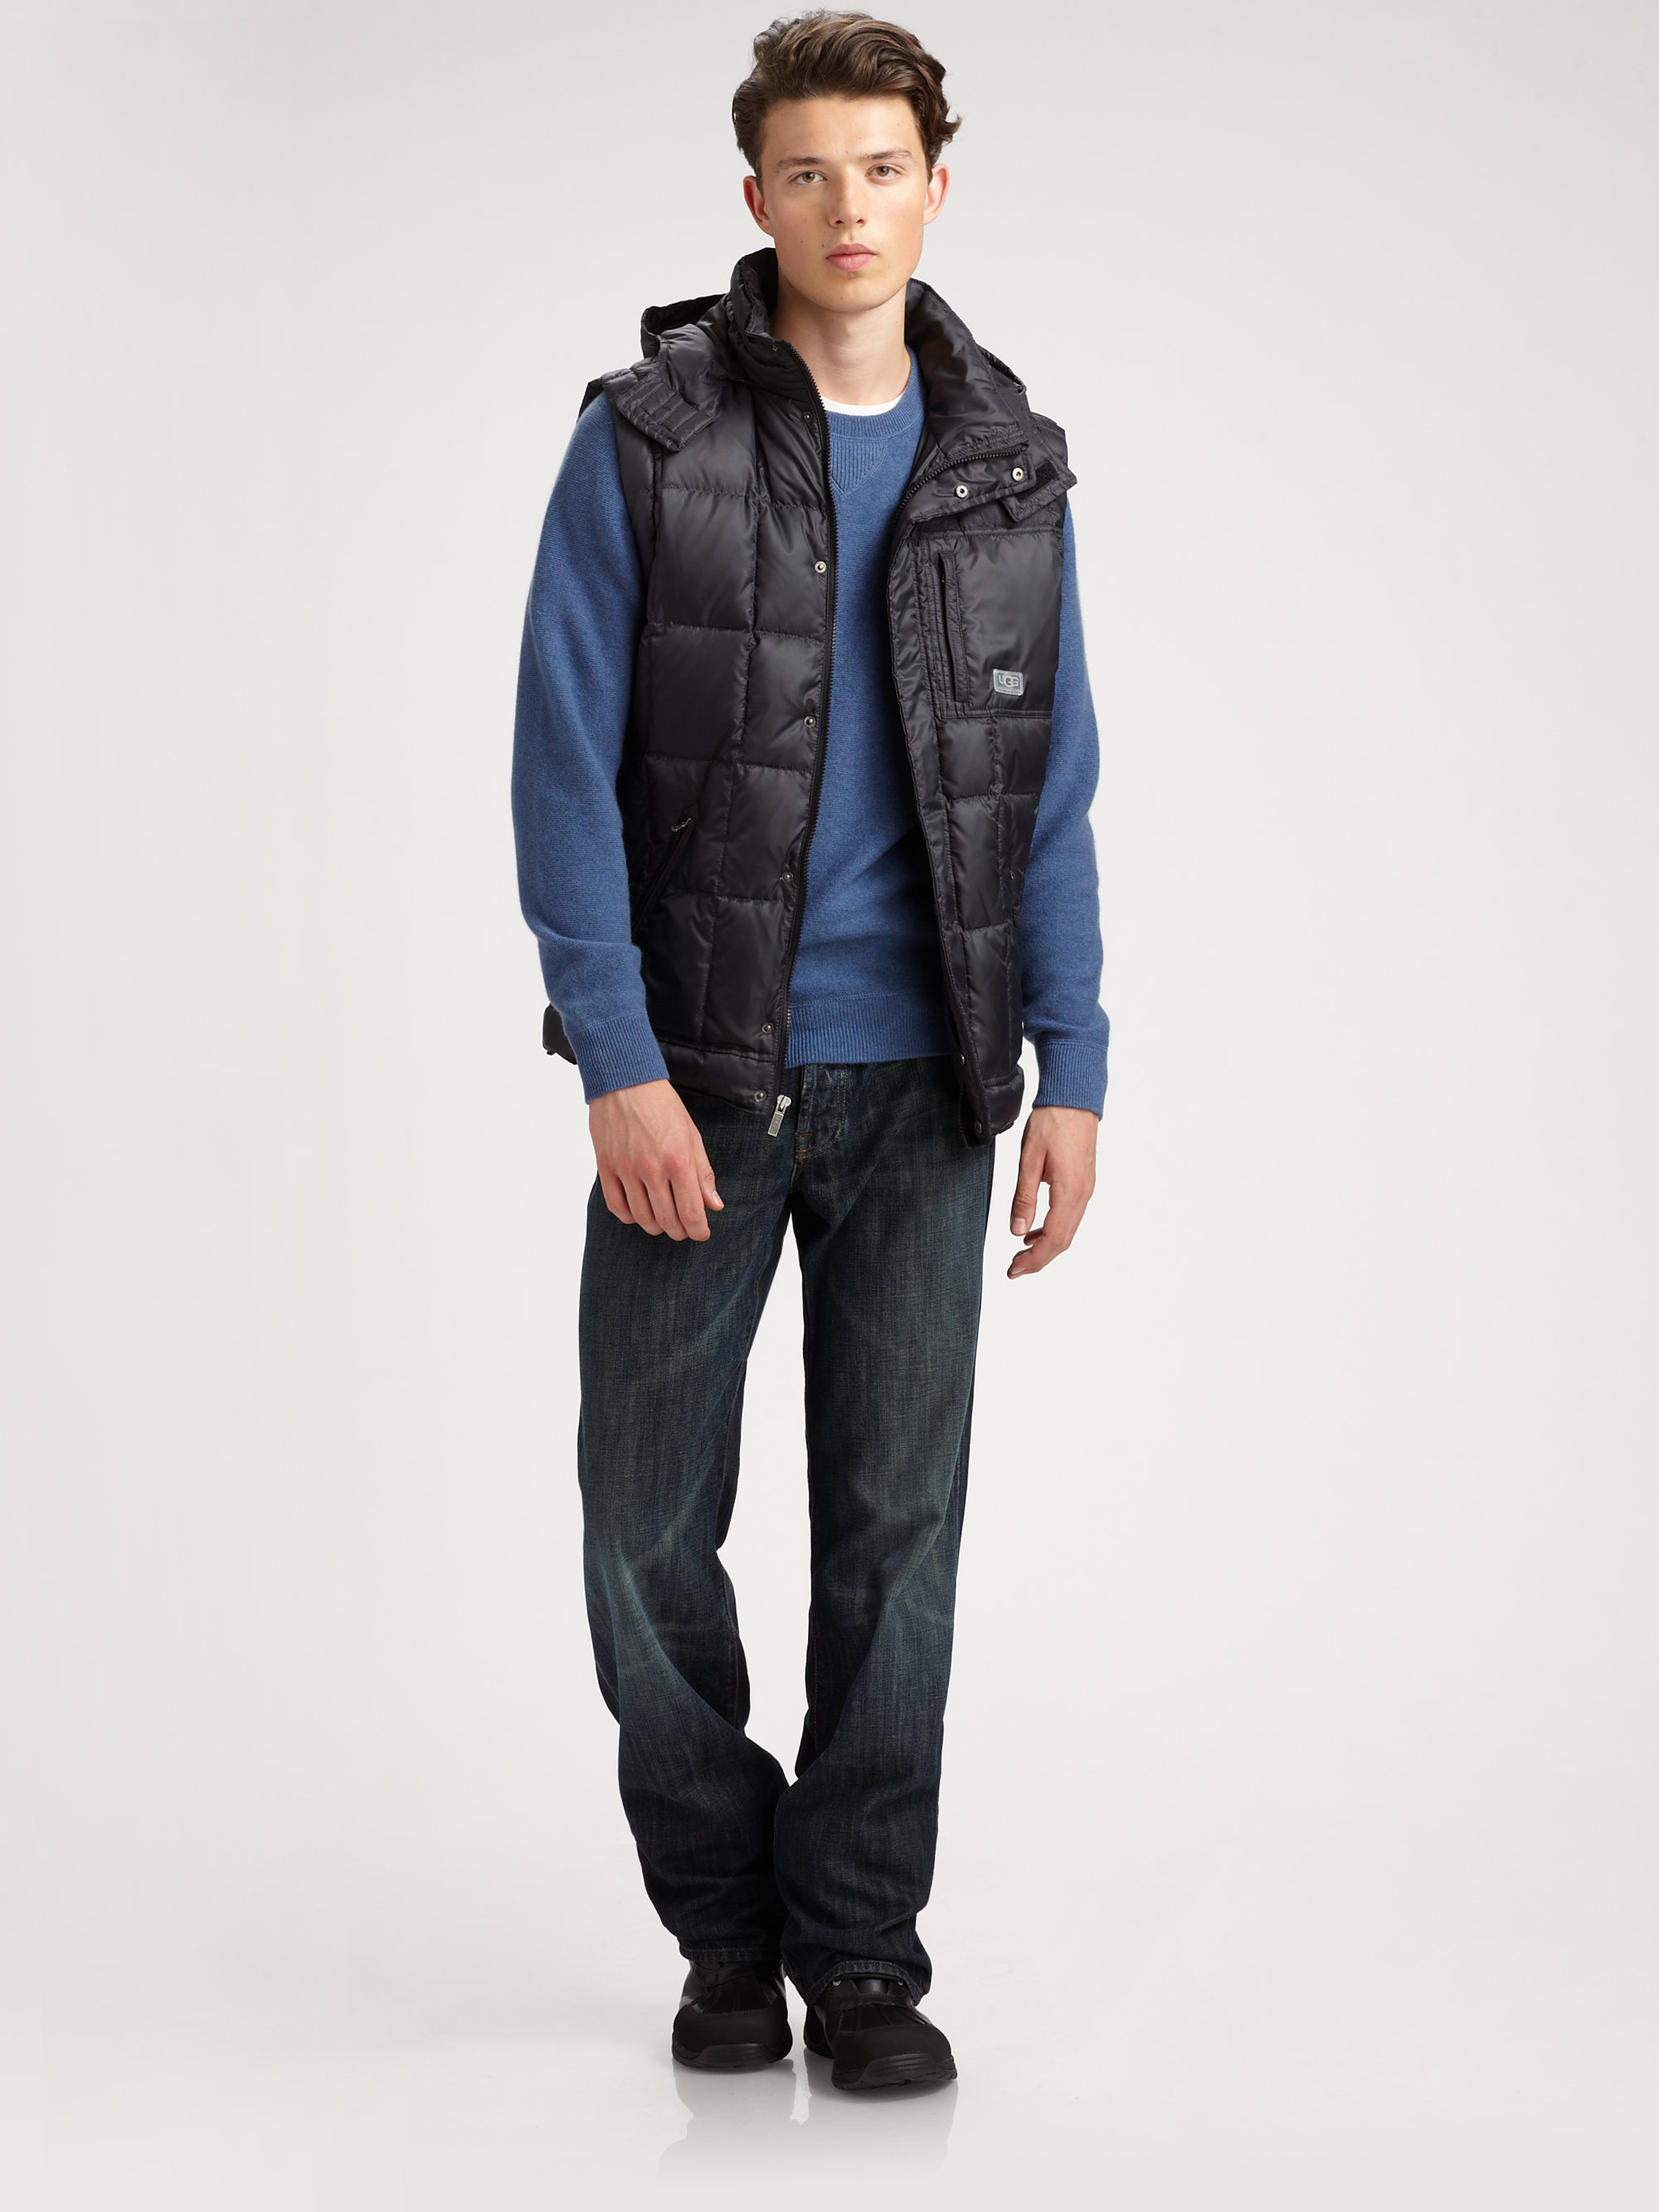 This puffer vest from The North Face uses their special ThermoBall insulation technology that is designed to keep you toasty warm even when the skies open up with snow and rain. The garment features an internal chest pocket, nylon ripstop fabric, and a lightweight and VISLON center zipper.